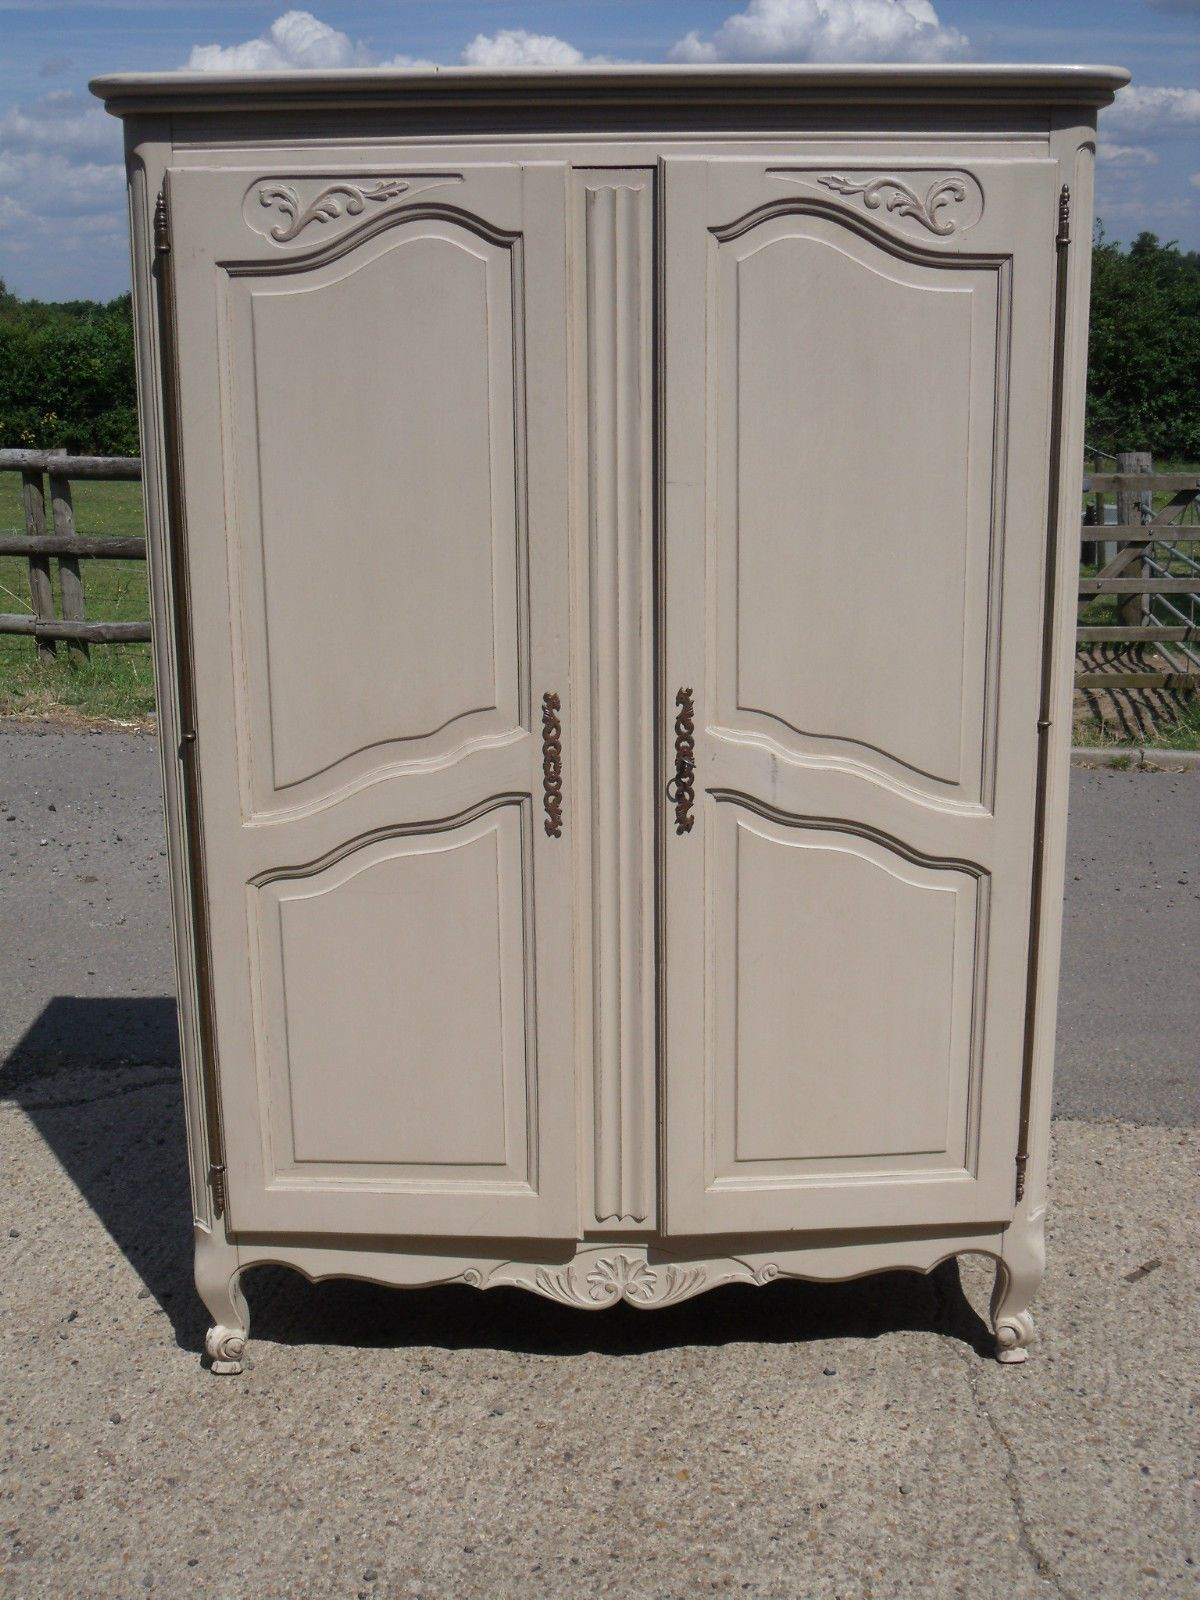 Vintage French Painted Pine Armoire Knock Down Wardrobe French Furniture